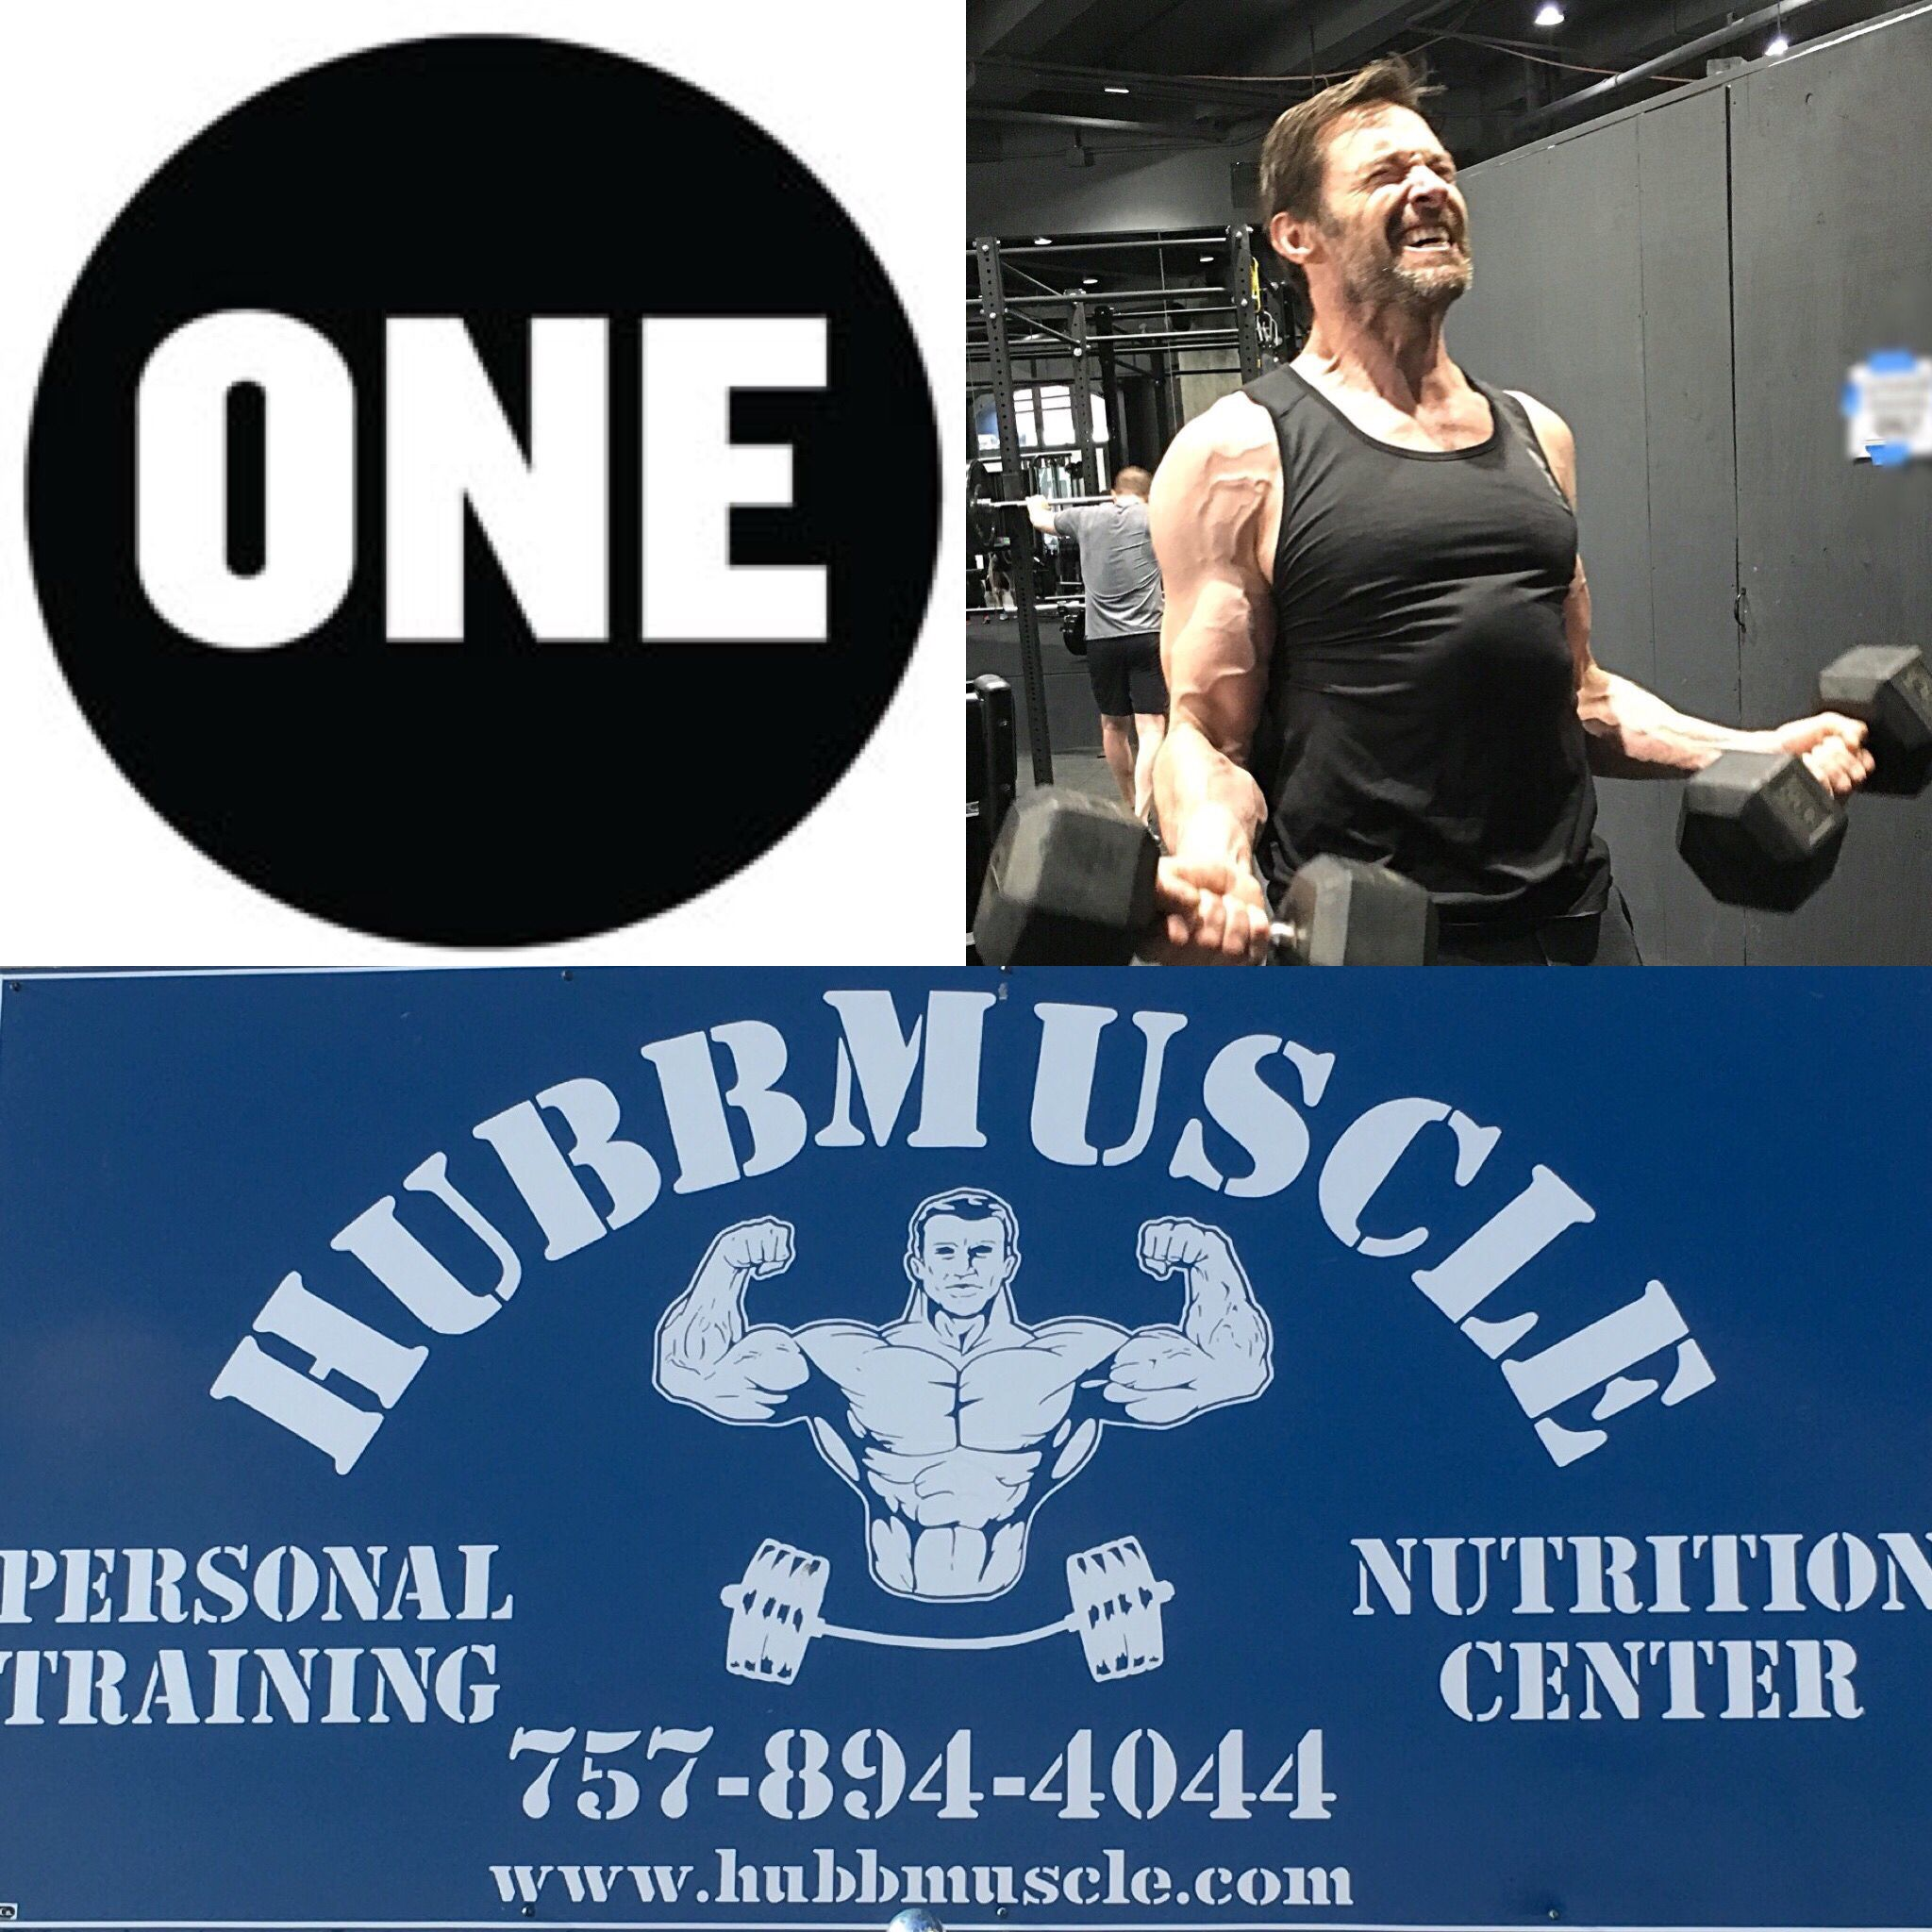 #hubbmusclenation Hubbmuscle.com  We now have ONE spot open for training after school/work!  If you're interested in customized workouts and meal plans to get you to your fitness/weight/size goal please contact us today! This will not be available for long.  We work on a first come first serve basis with training/nutrition sessions so please don't wait!  Thank you!  #meanon #trainhard #trainmean #eatclean #getlean the #hubbmusclefitway